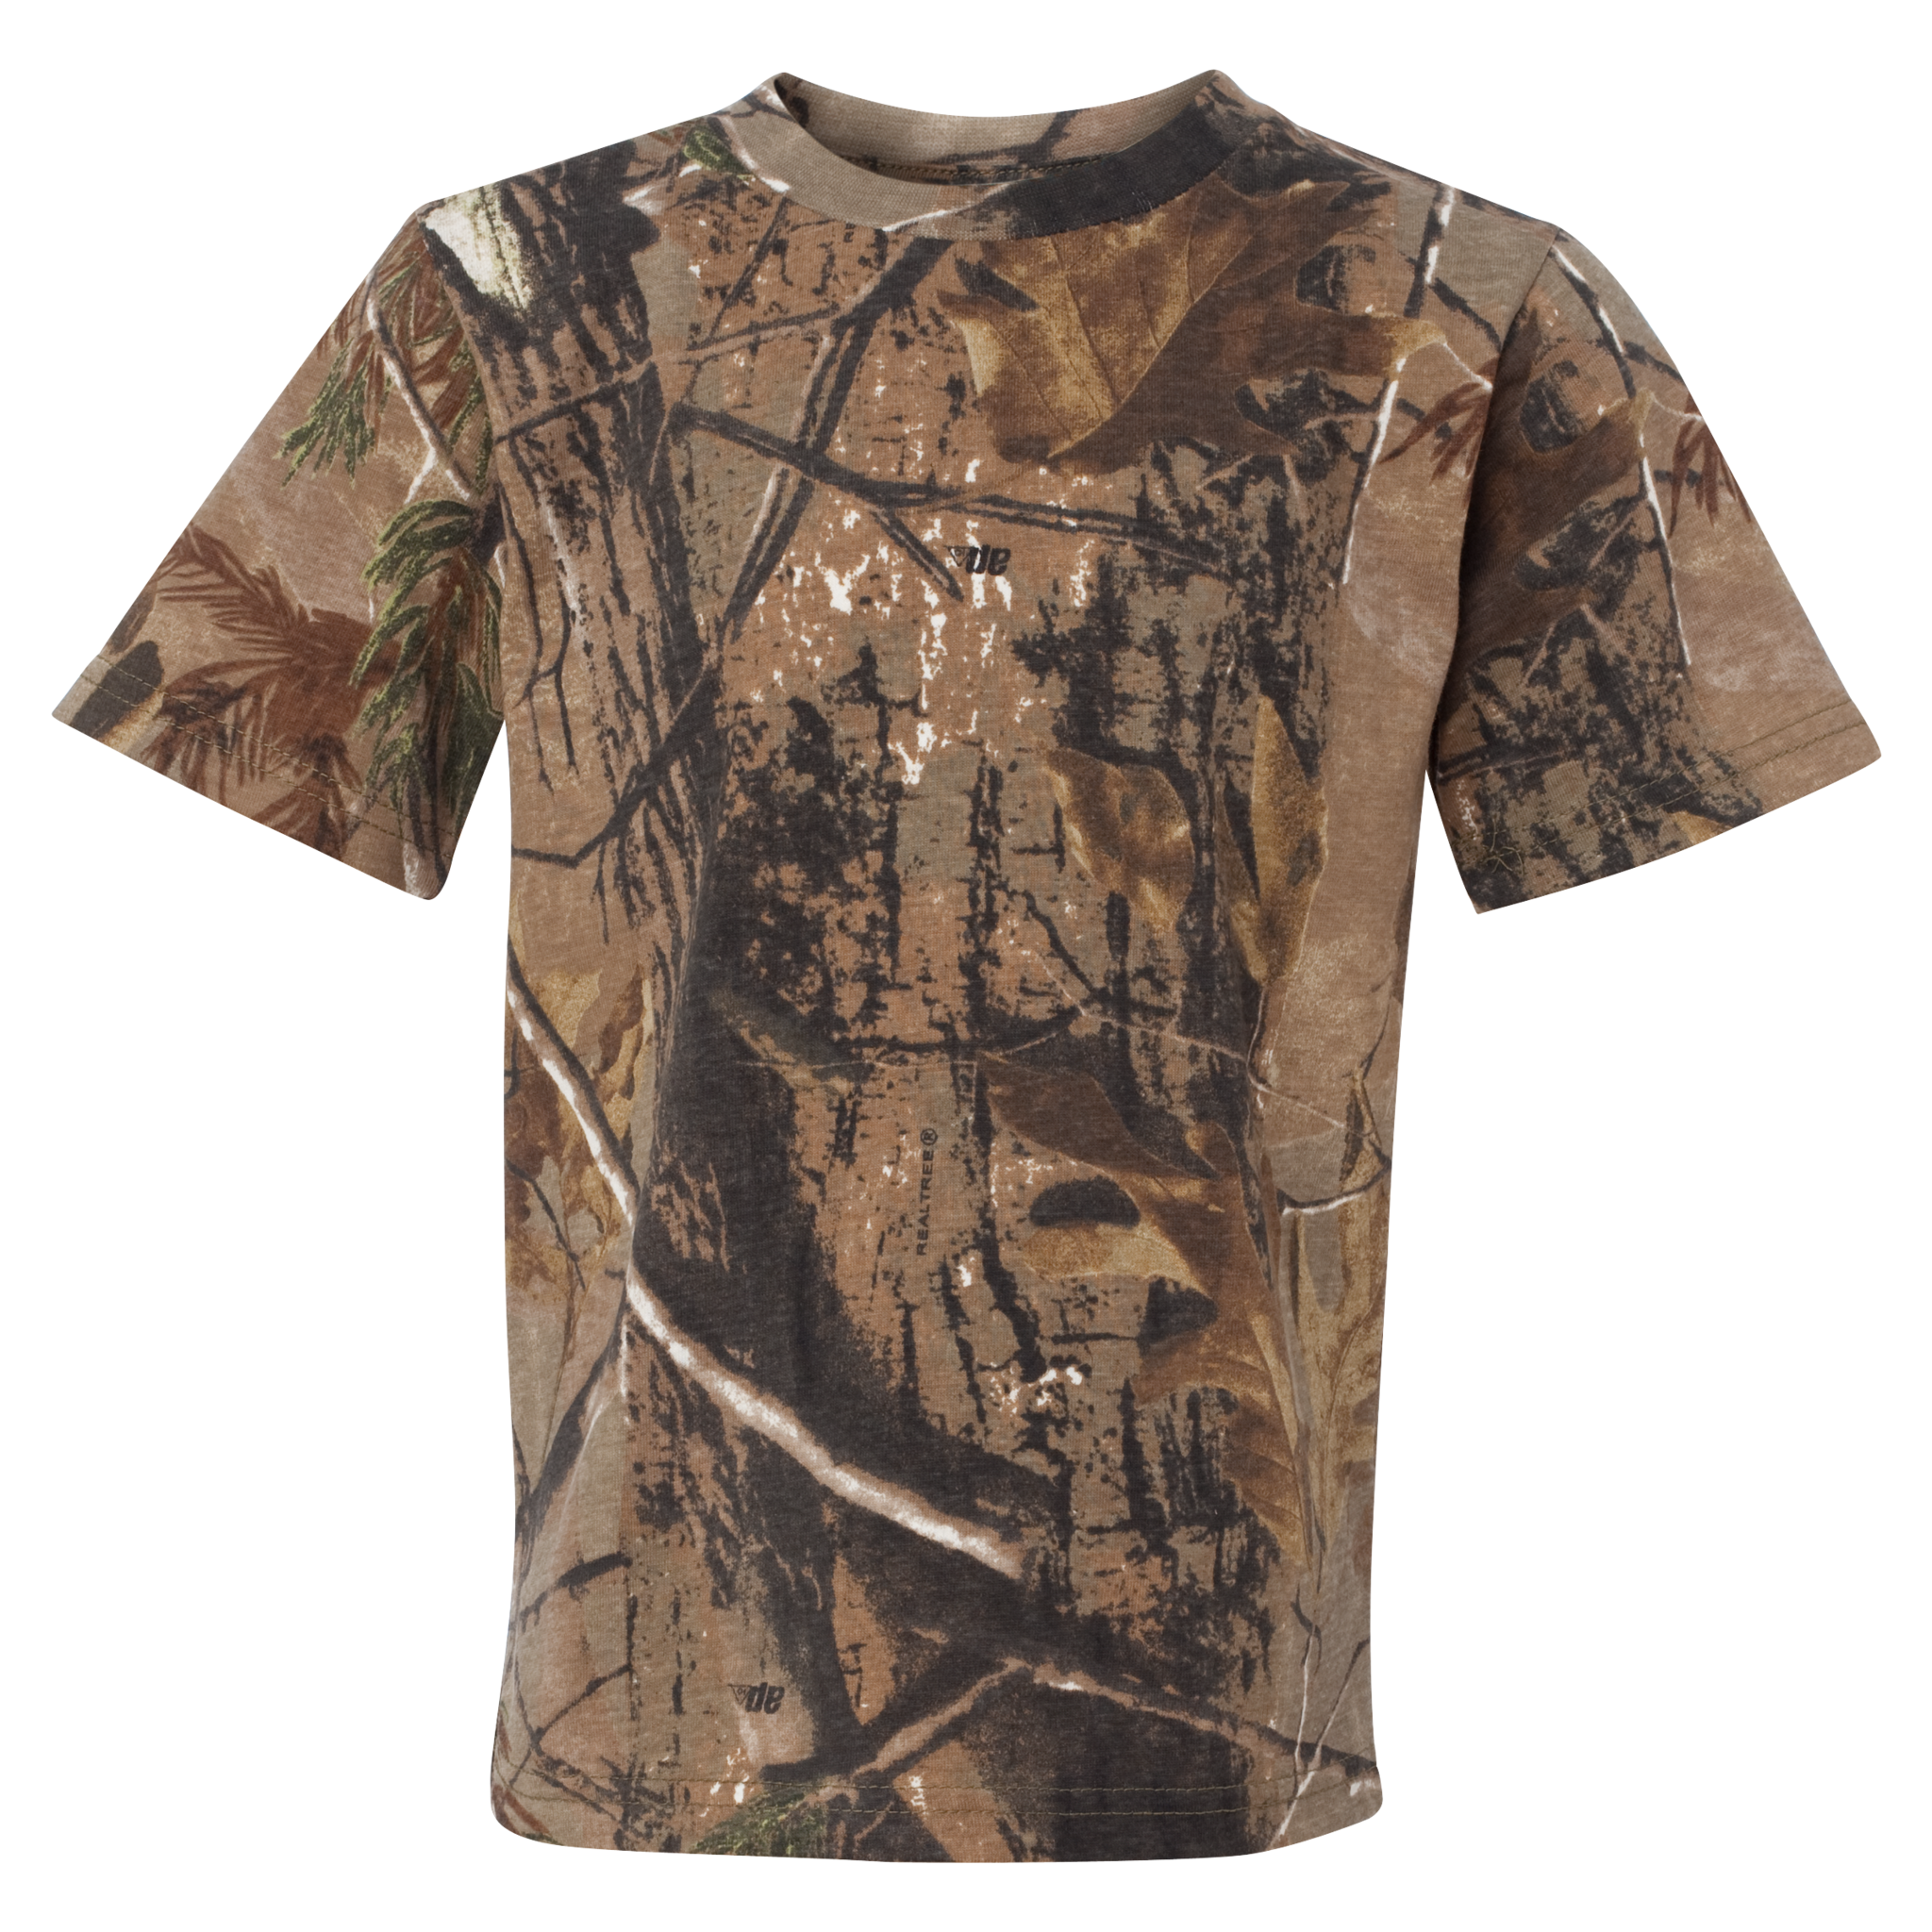 Design your own t shirt military - Create Your Own Realtree Tshirt